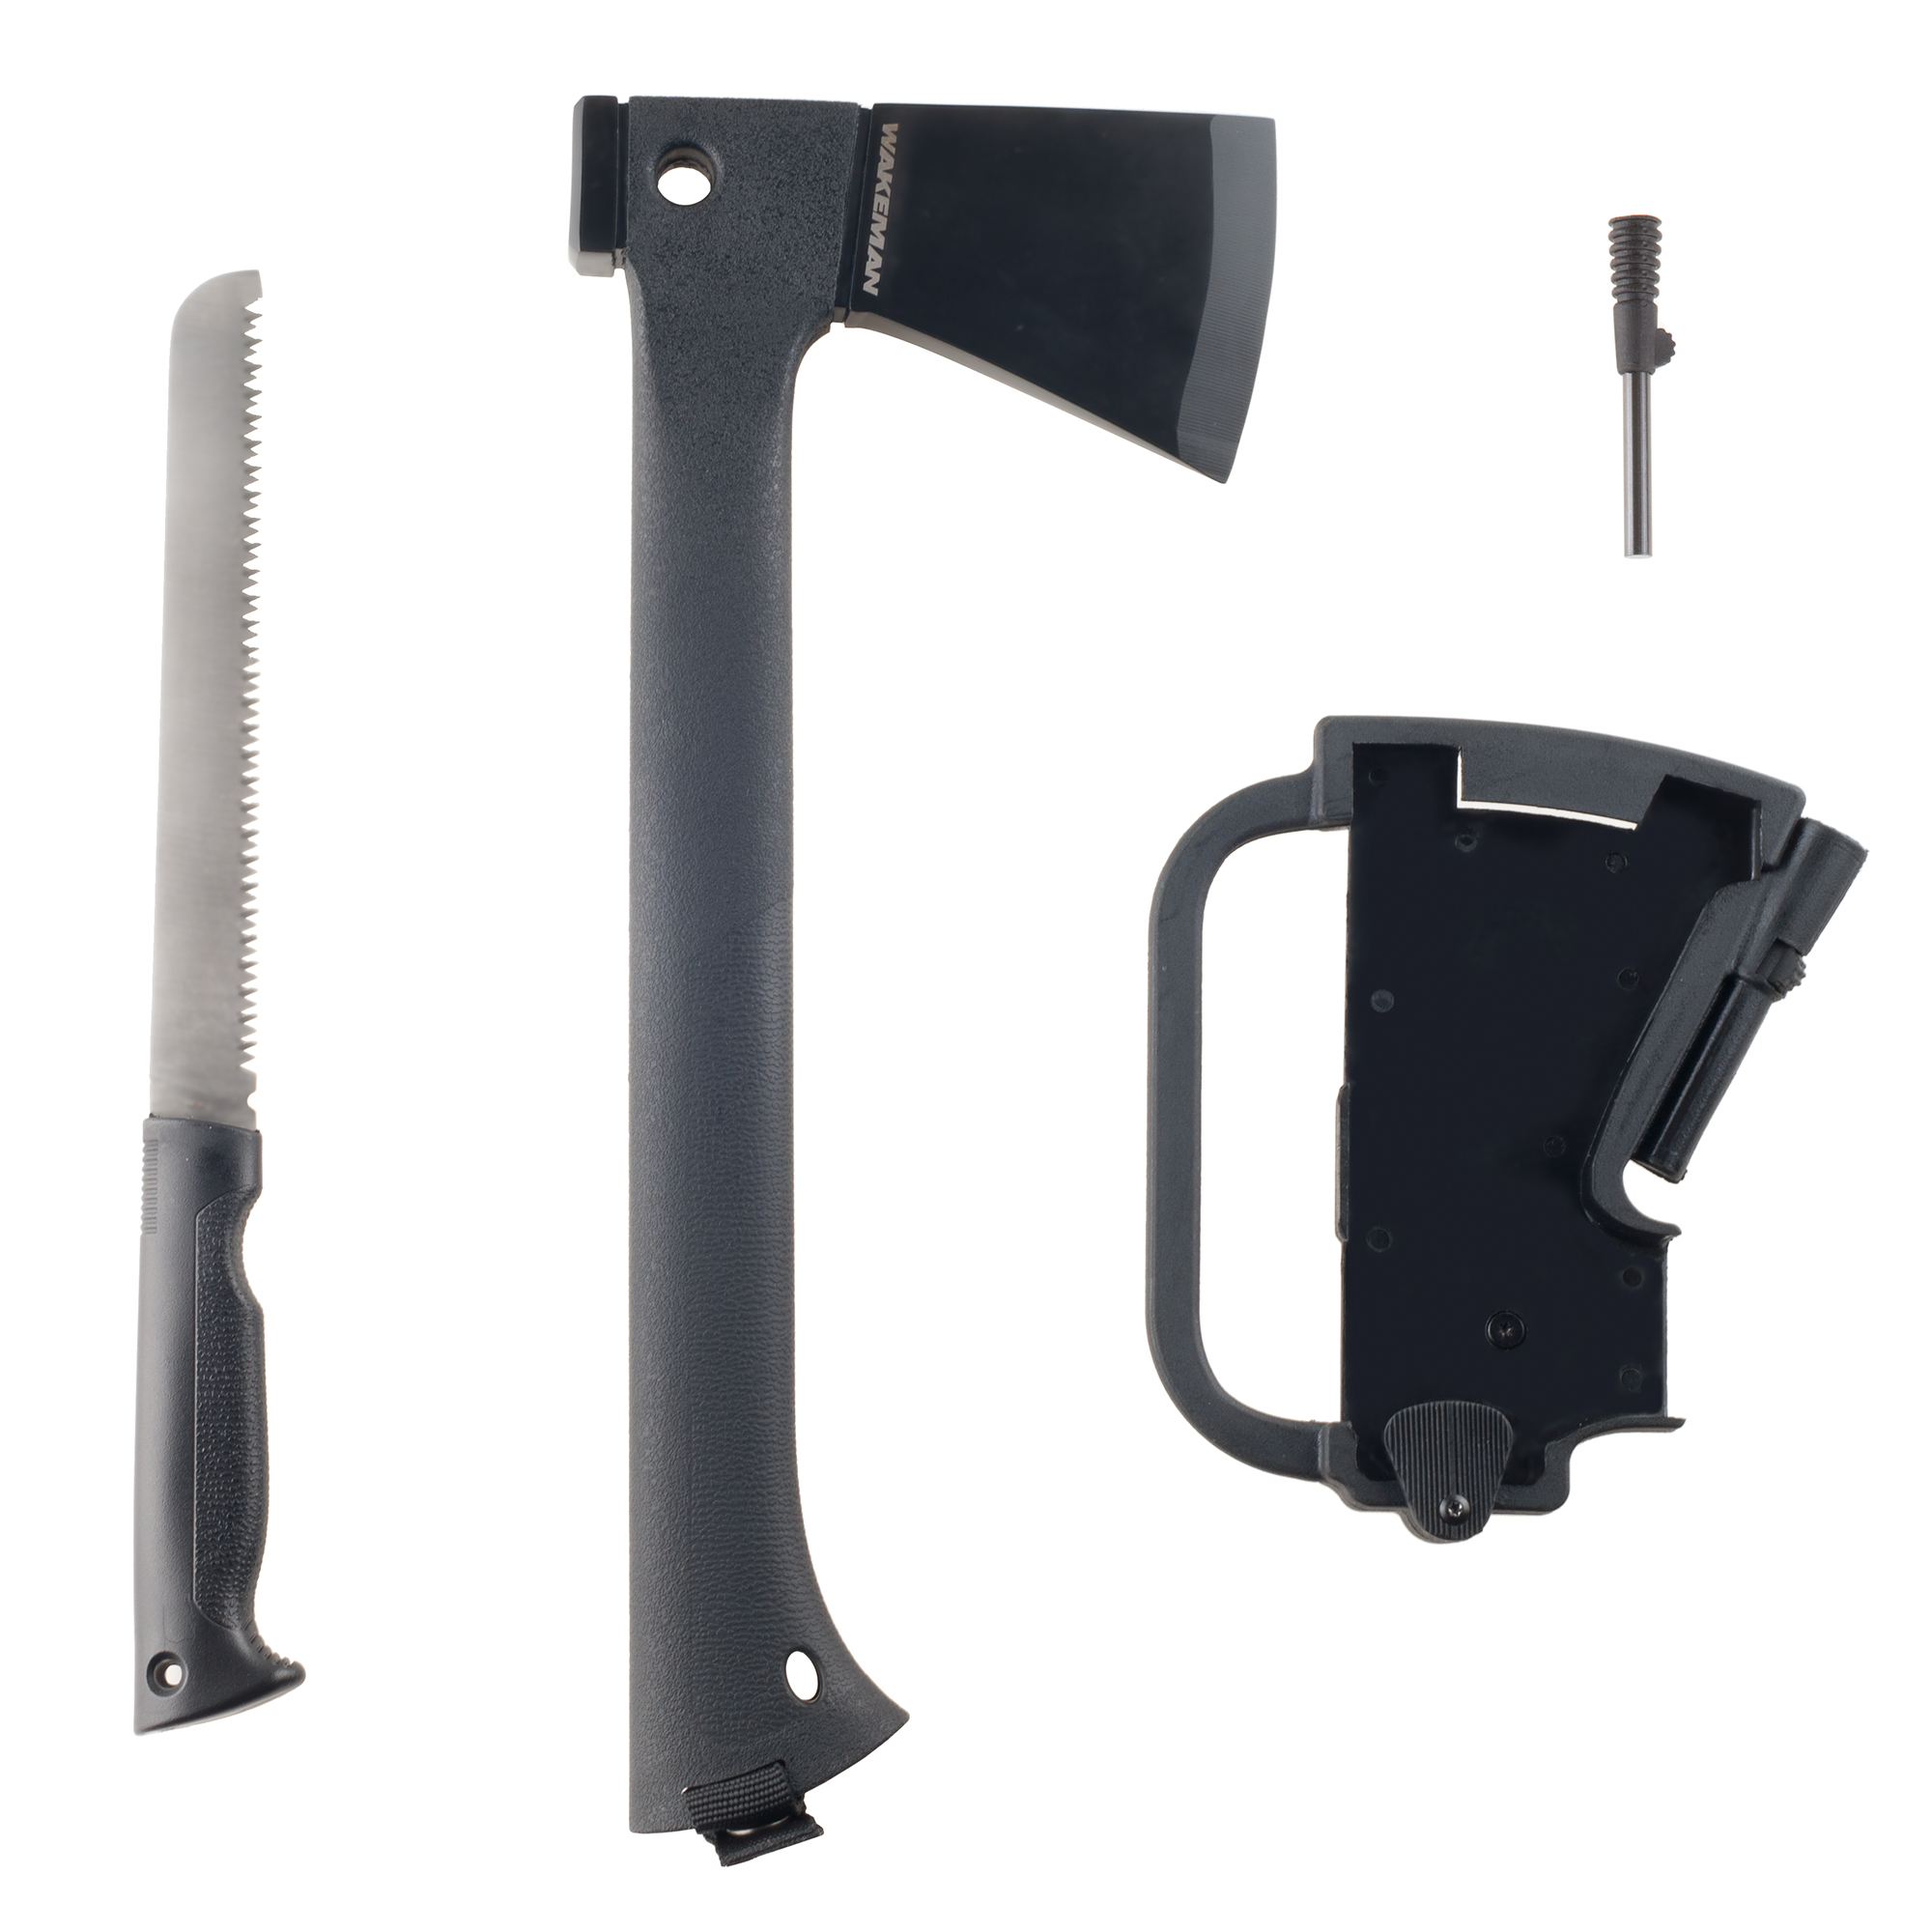 Multi-Function Camping Axe with Saw & Firestarter by Wakeman by Trademark Global LLC